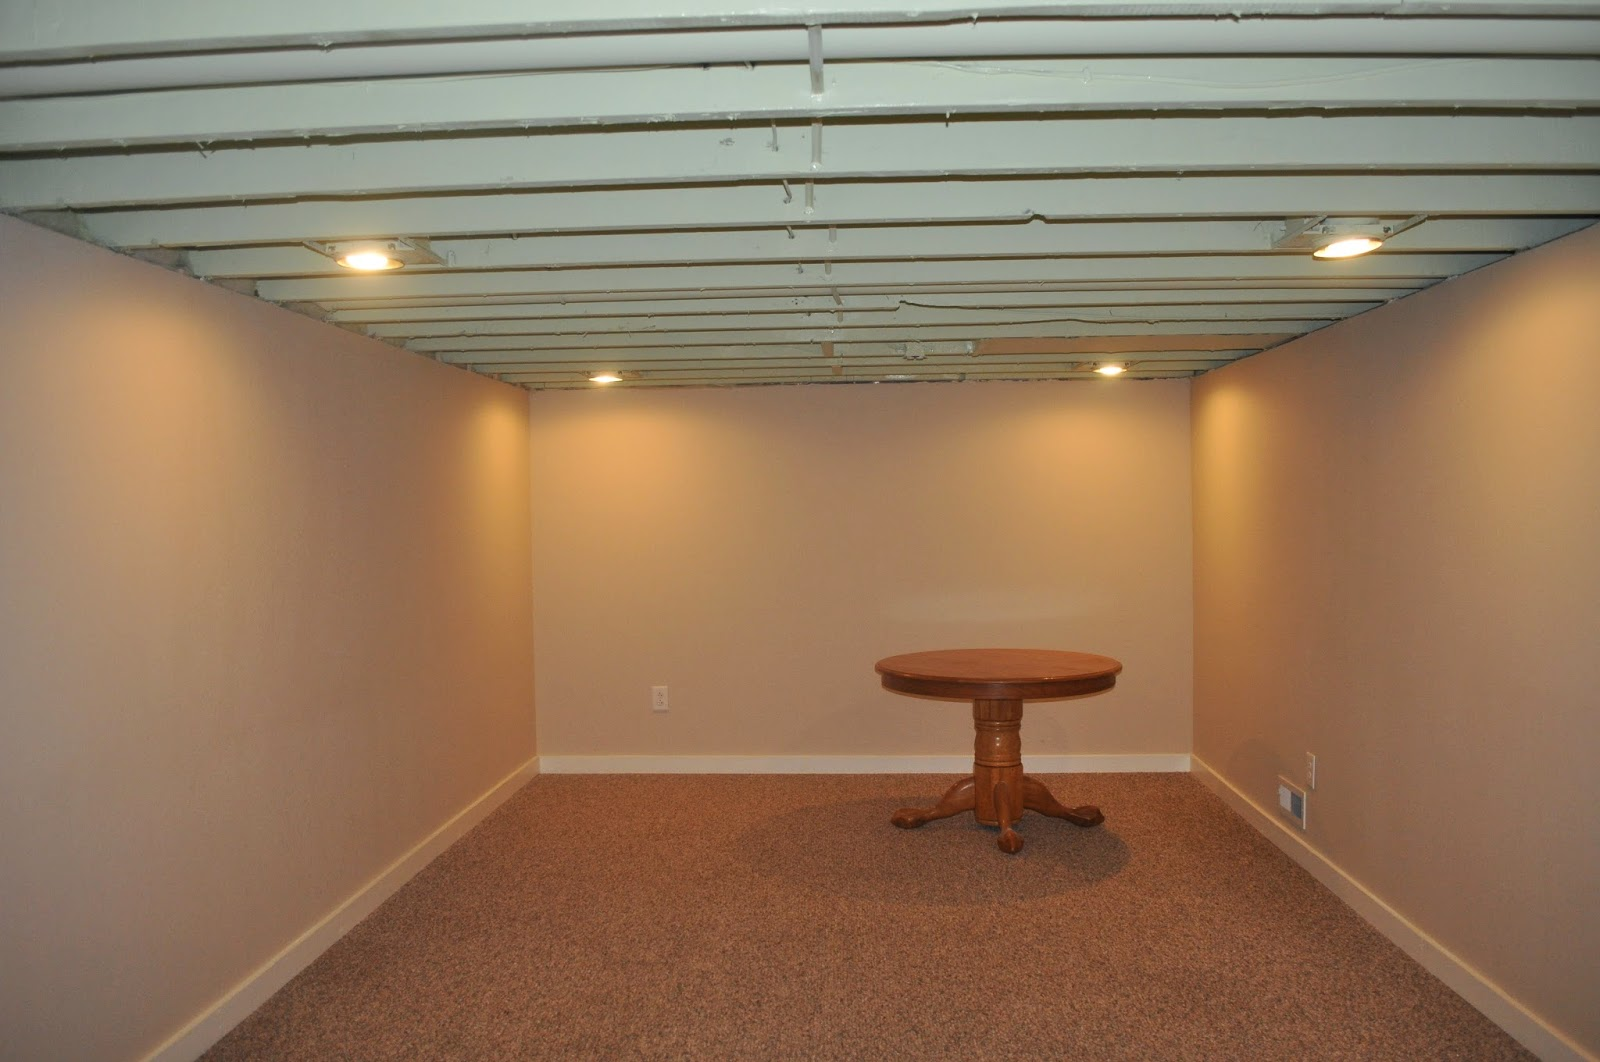 carri us home painting a basement ceiling. Black Bedroom Furniture Sets. Home Design Ideas